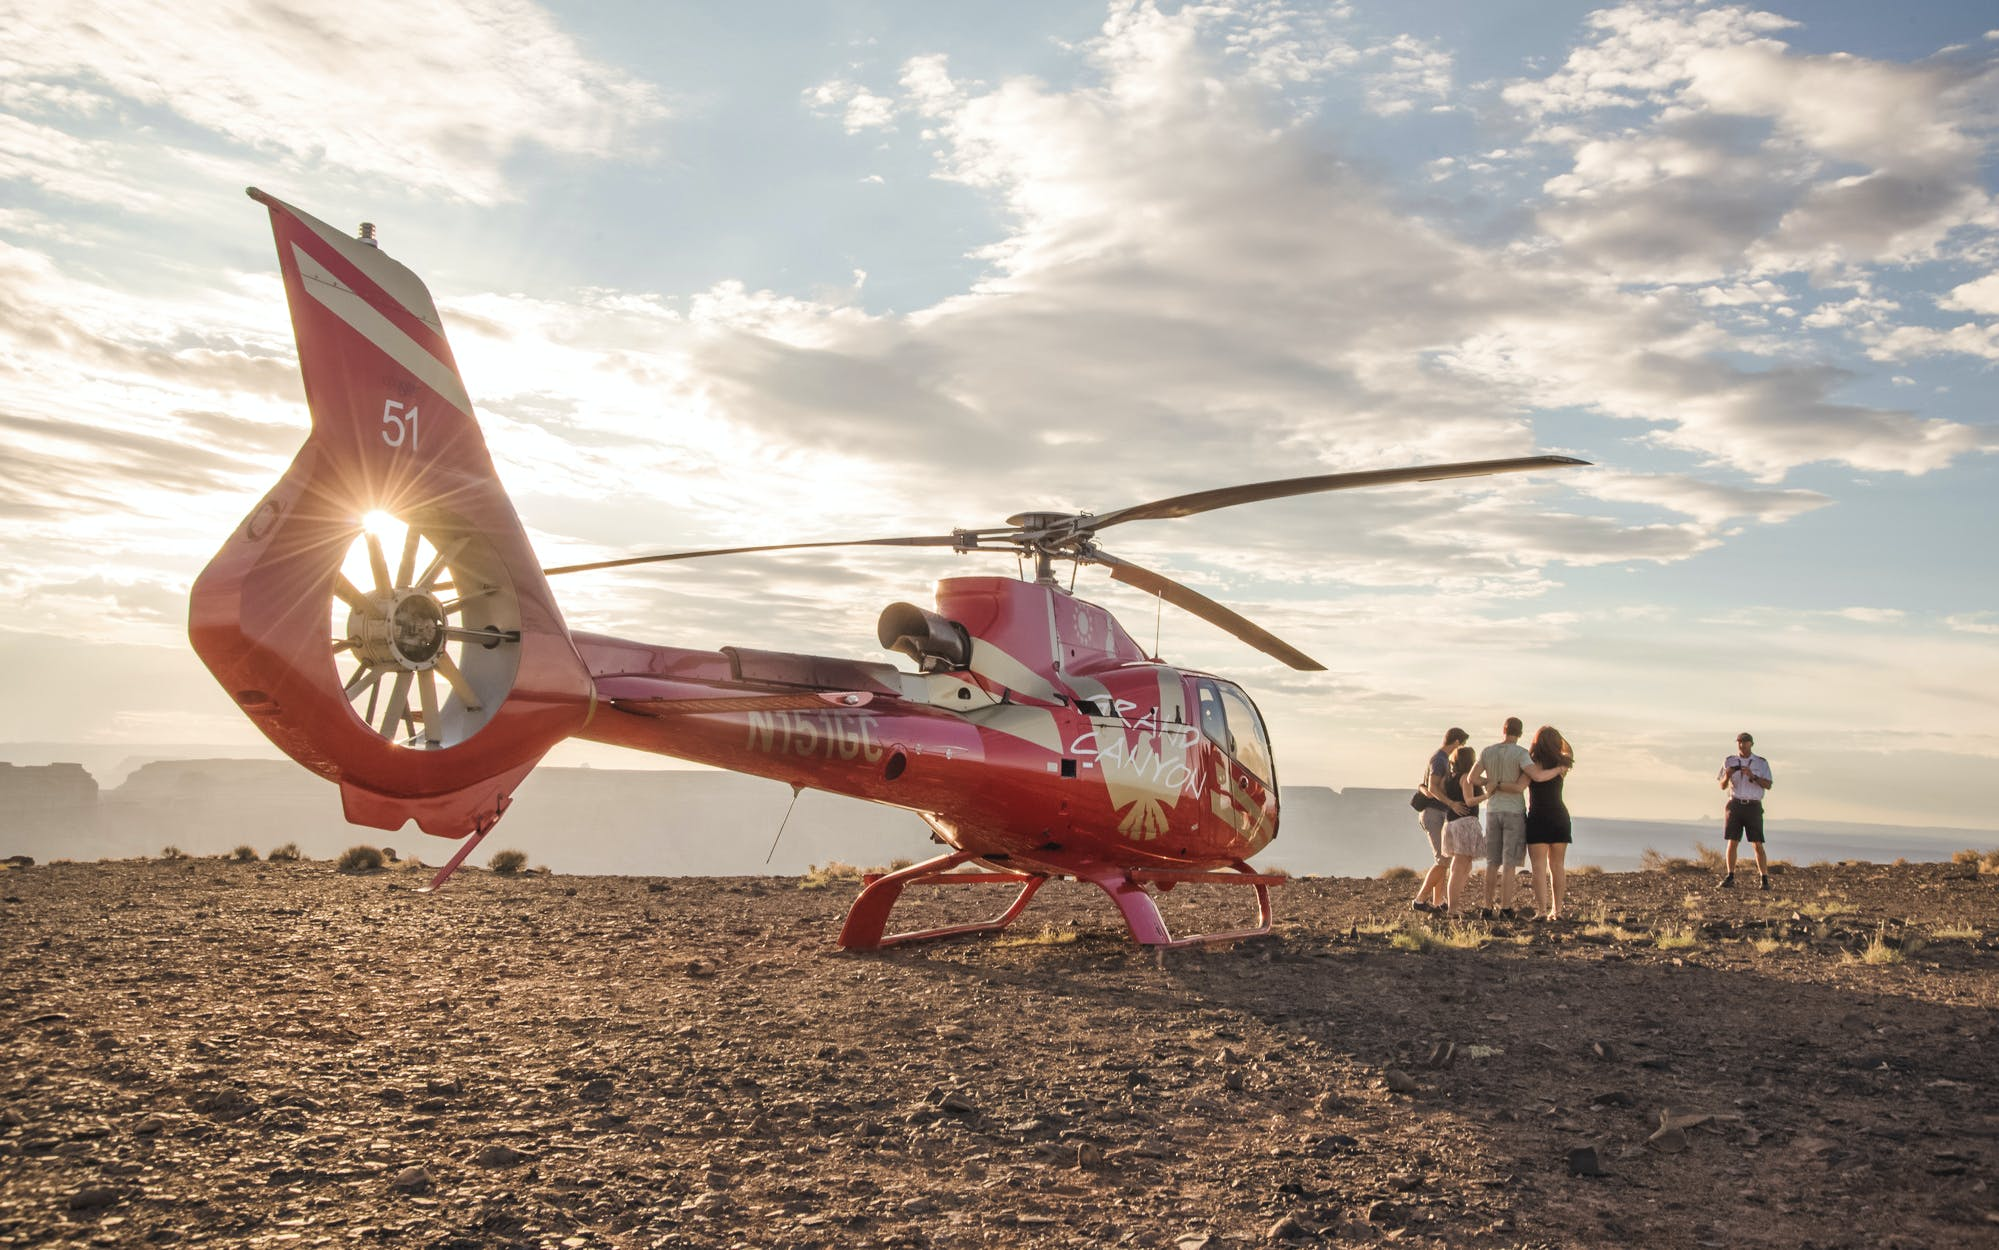 Grand Canyon Helicopter Tour with Landing & Champagne Picnic